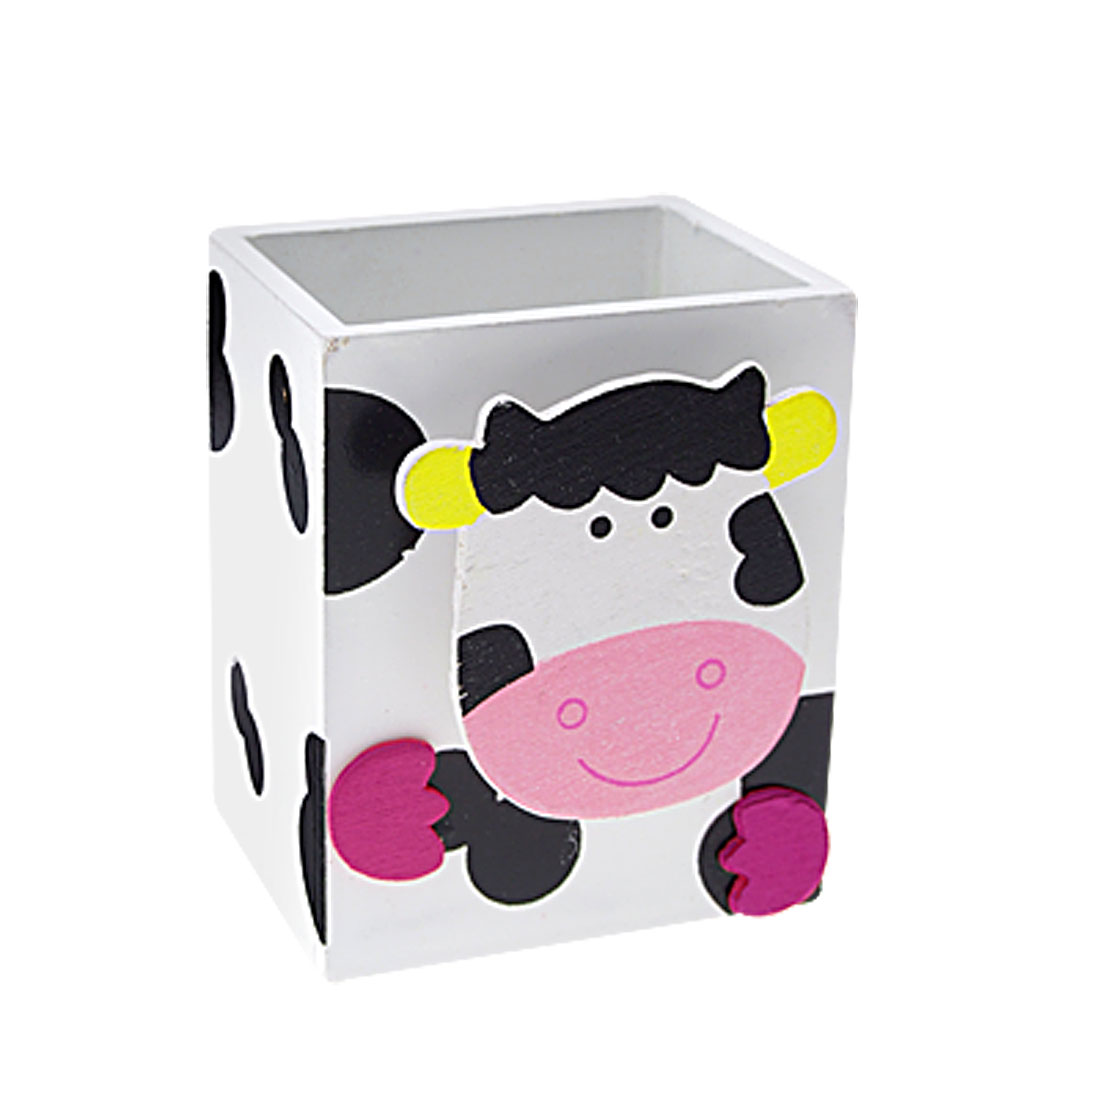 Cow Decor Memo Clip White Cuboid Wooden Pen Holder